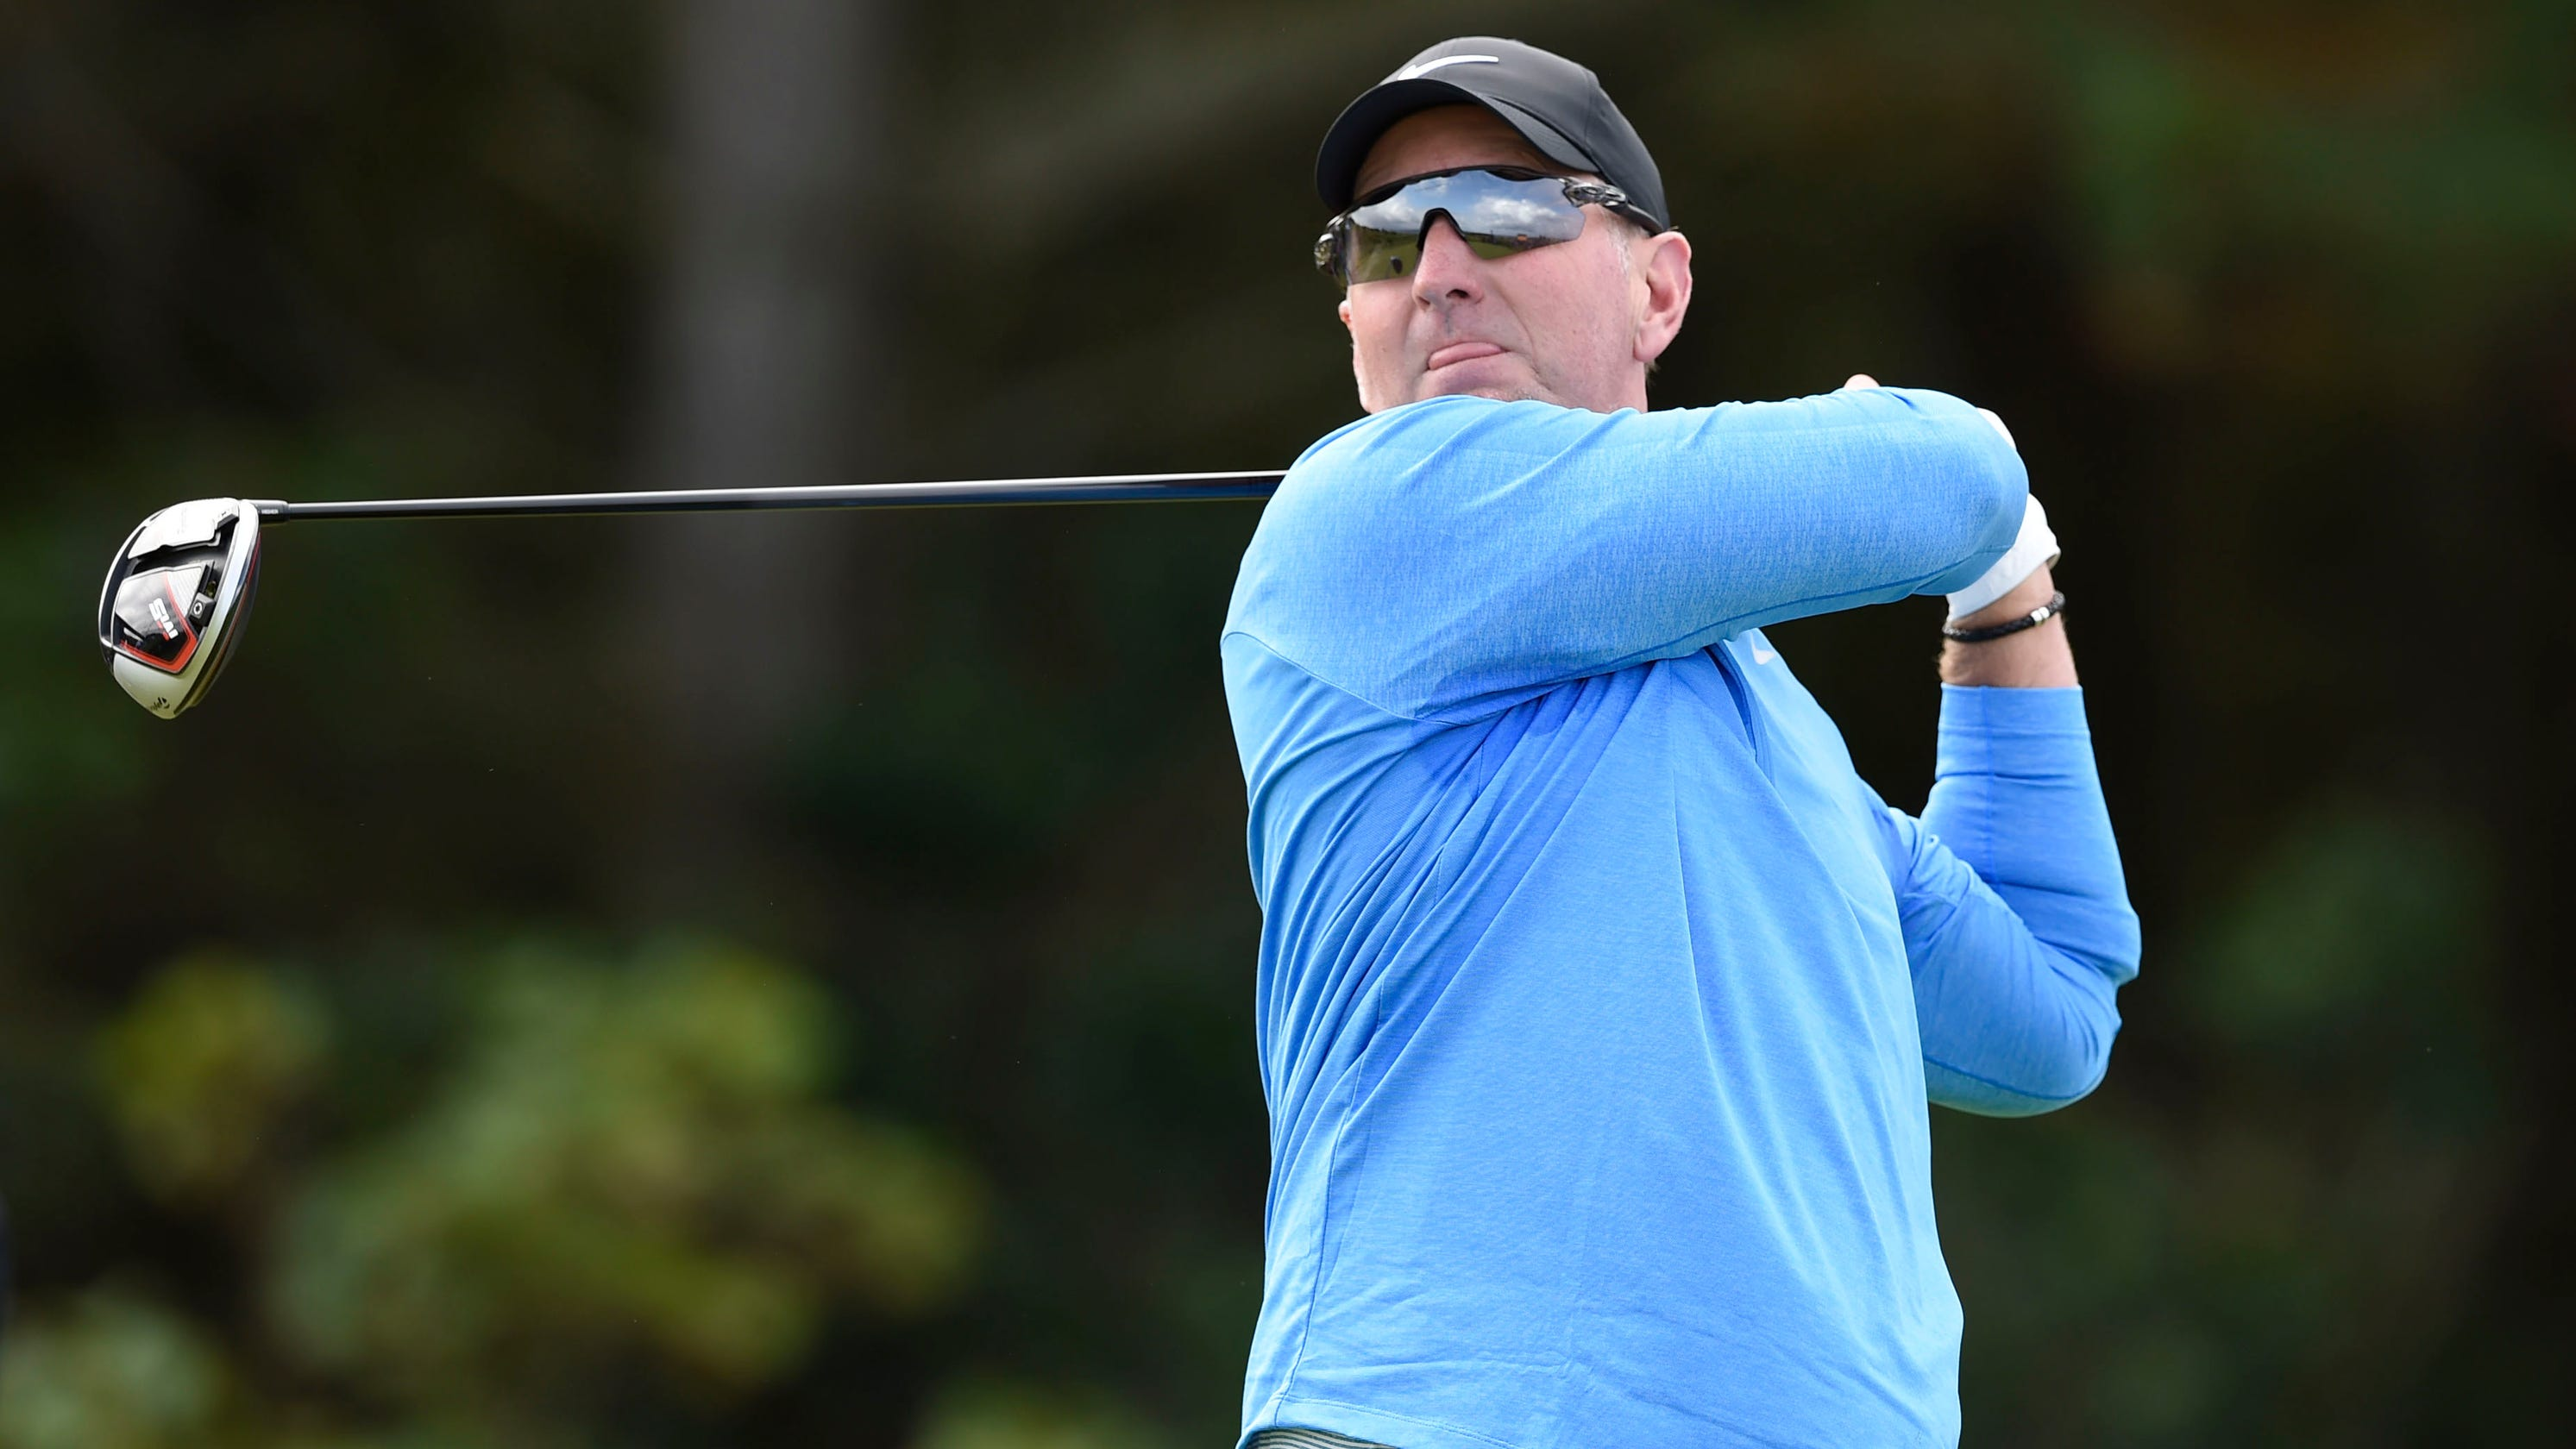 David Duval makes 14, just short of highest single score in history